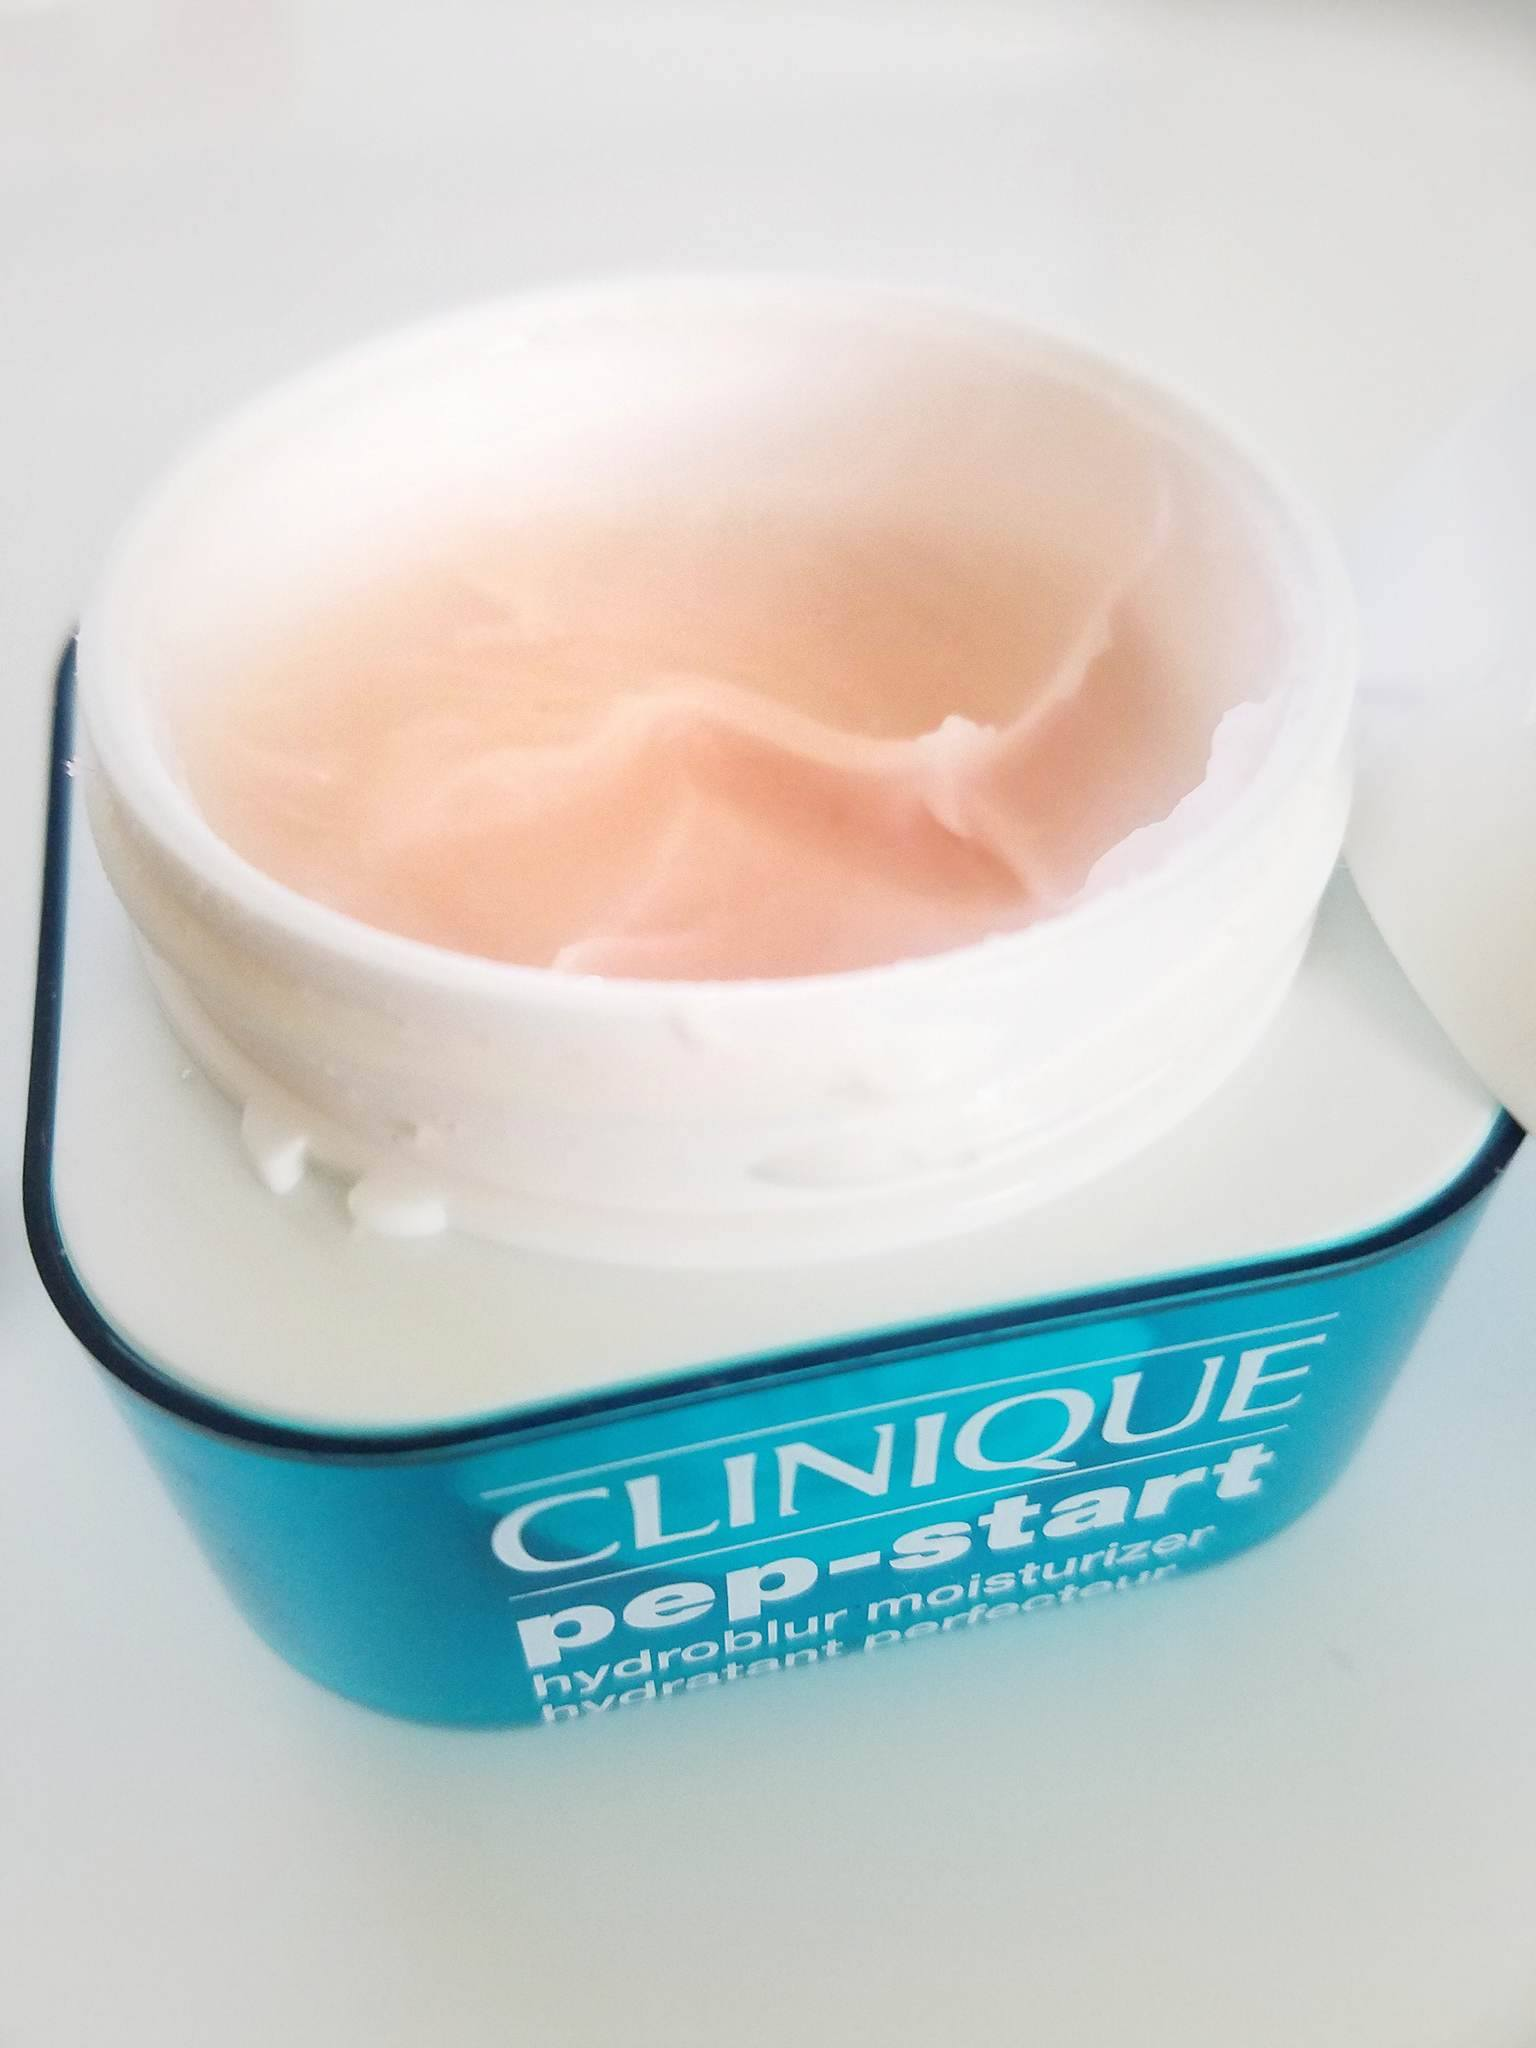 clinique-prep-star-moisturizer-blog-review